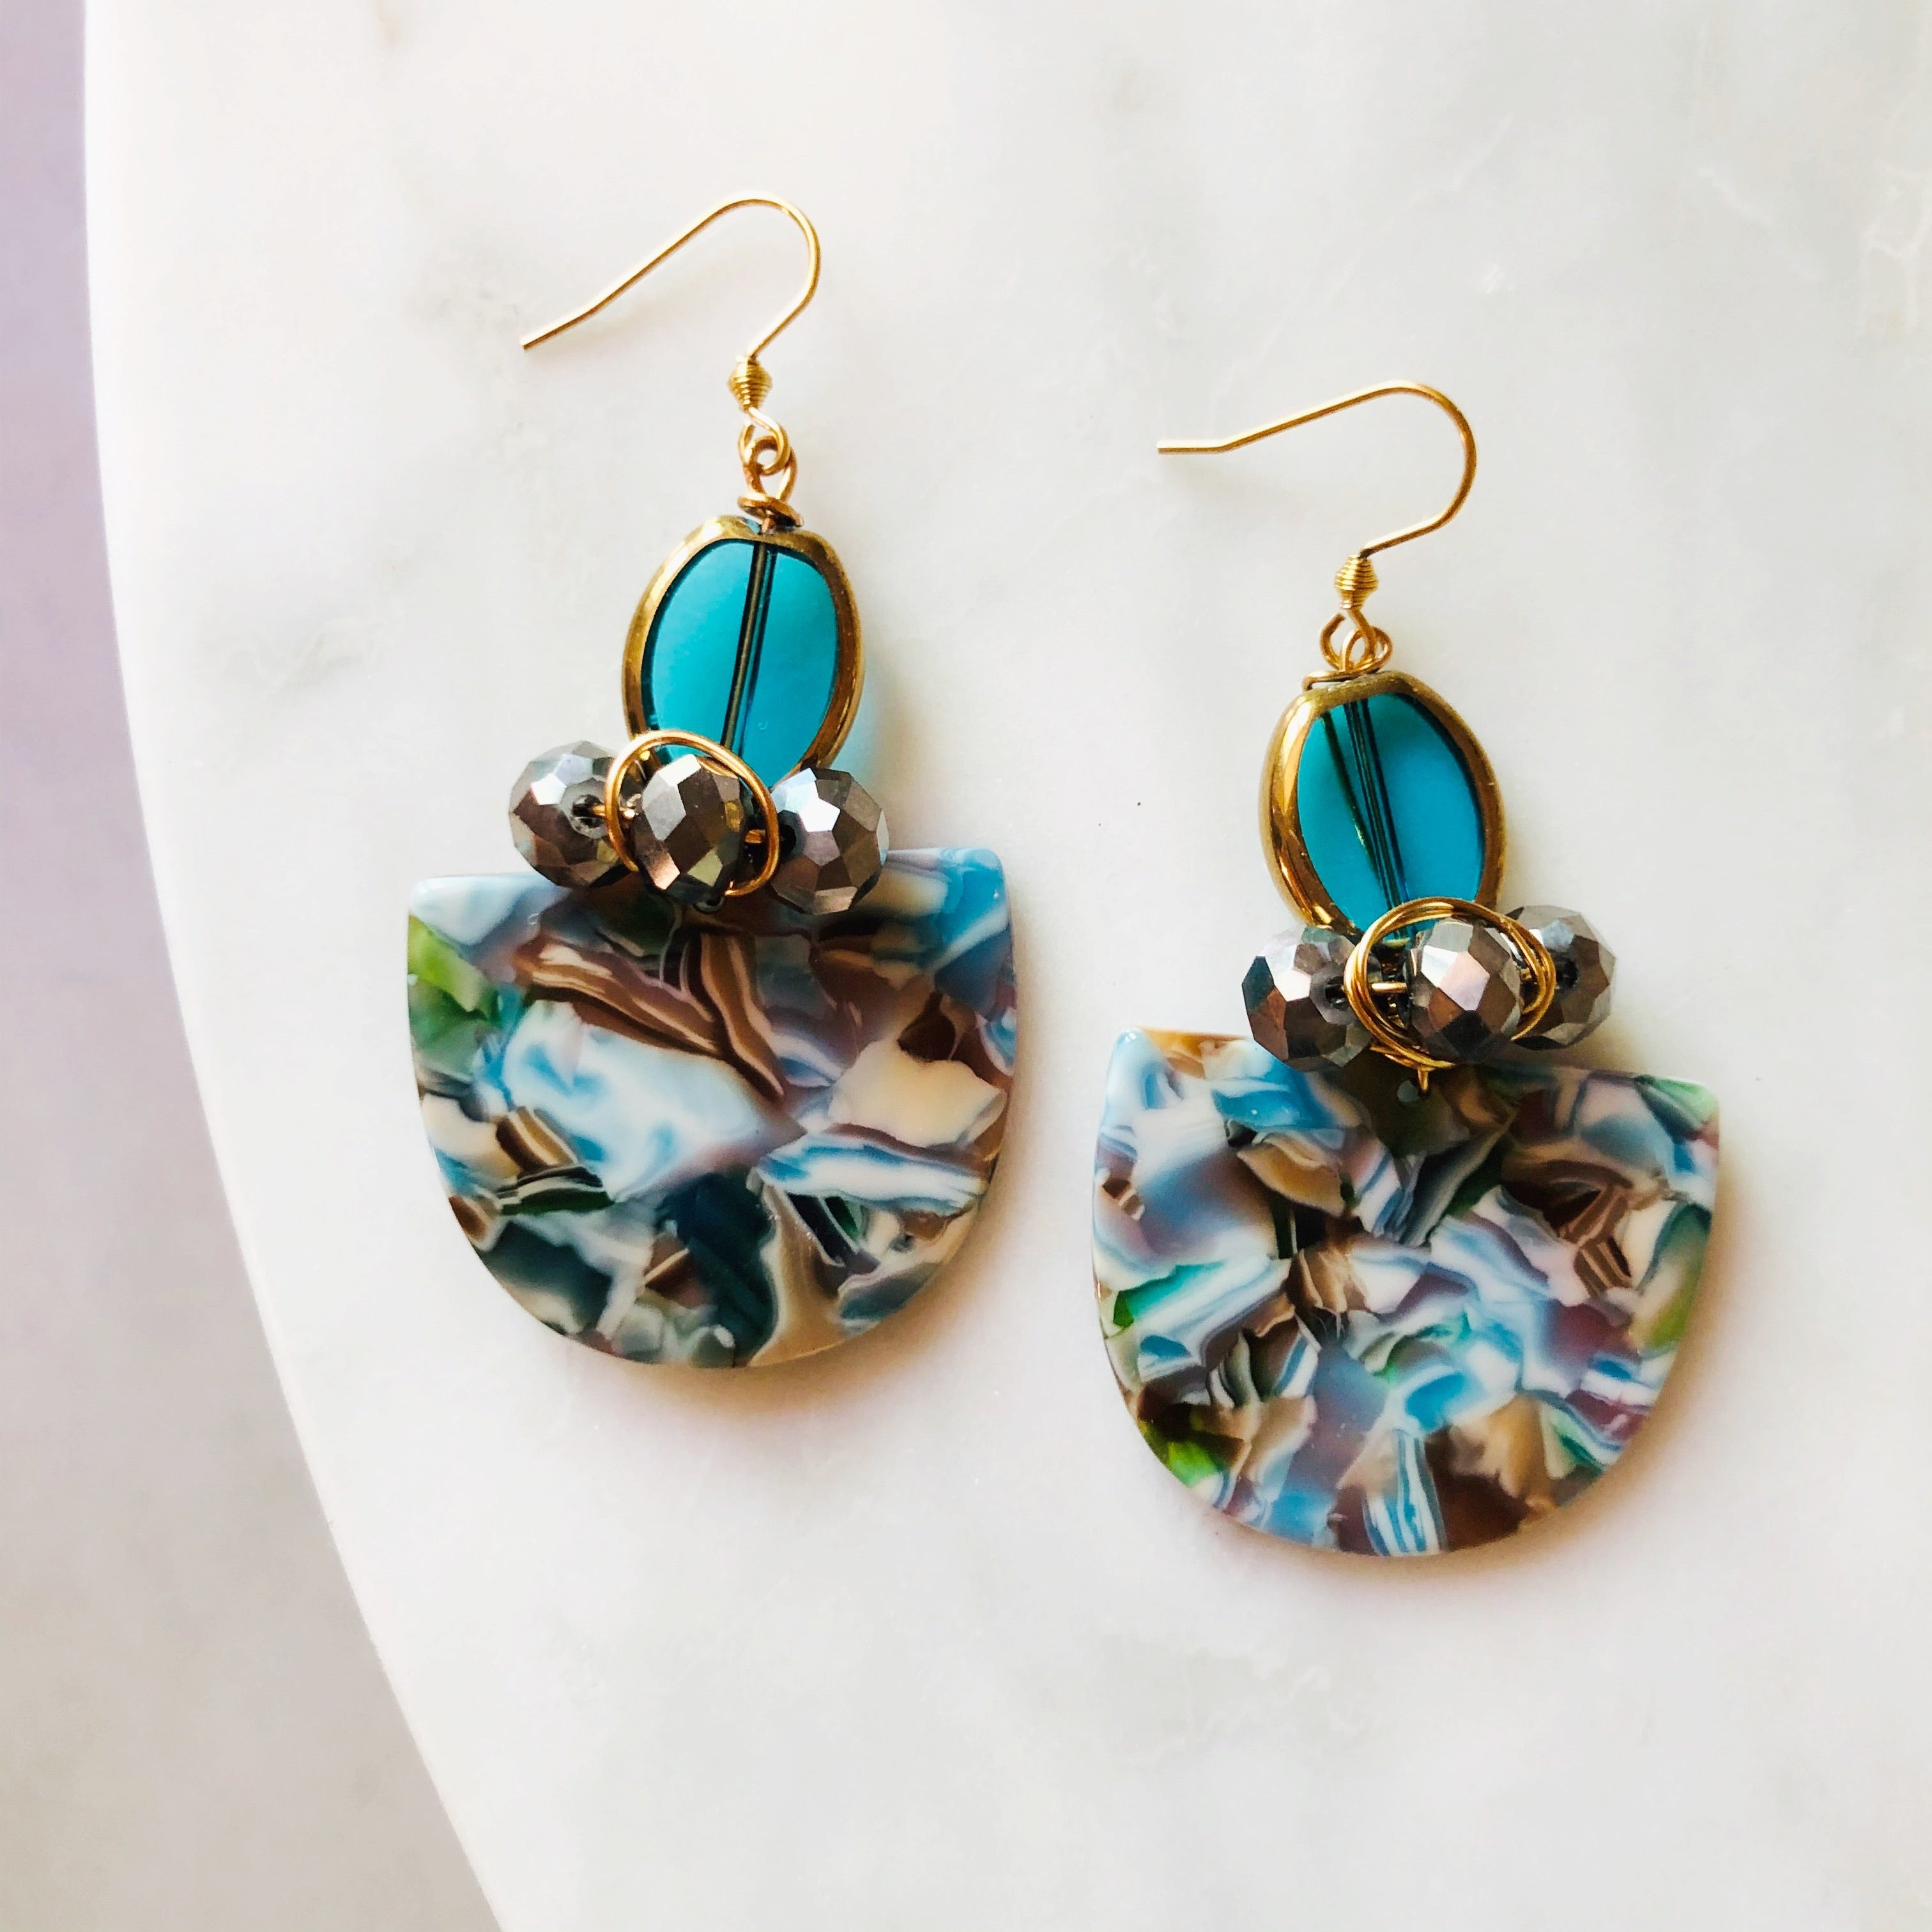 Shades of Blue pattered statement earrings